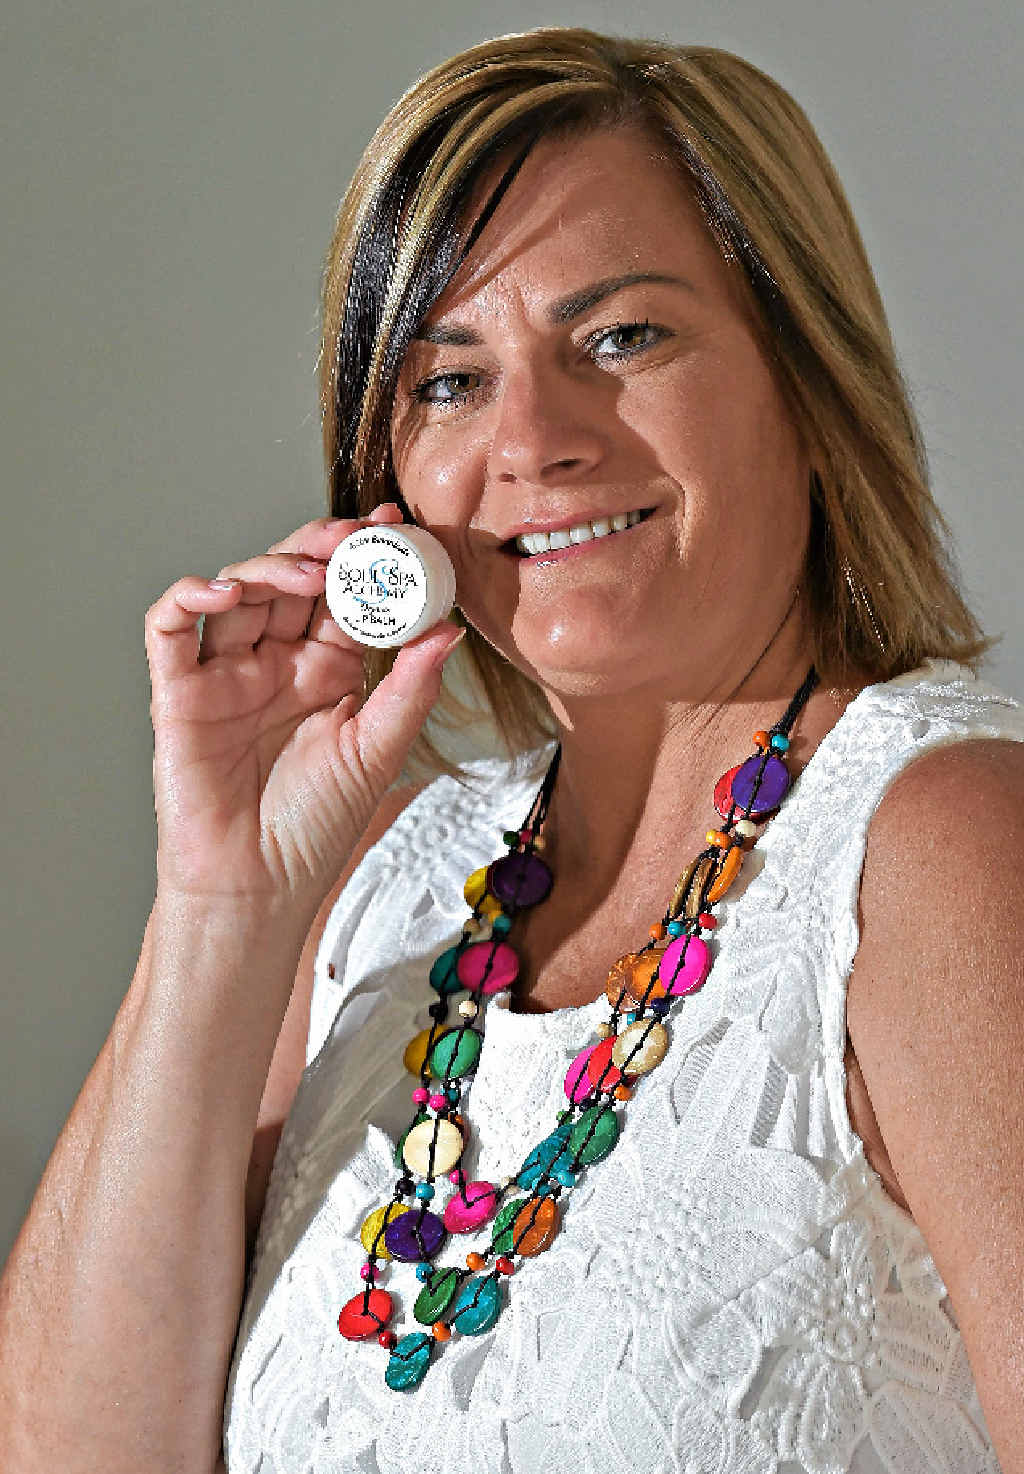 LIP SERVICE: Janine Hall is excited her lip balm will be presented to celebrities staying at the Four Seasons hotel in Beverly Hills for the Academy Awards.